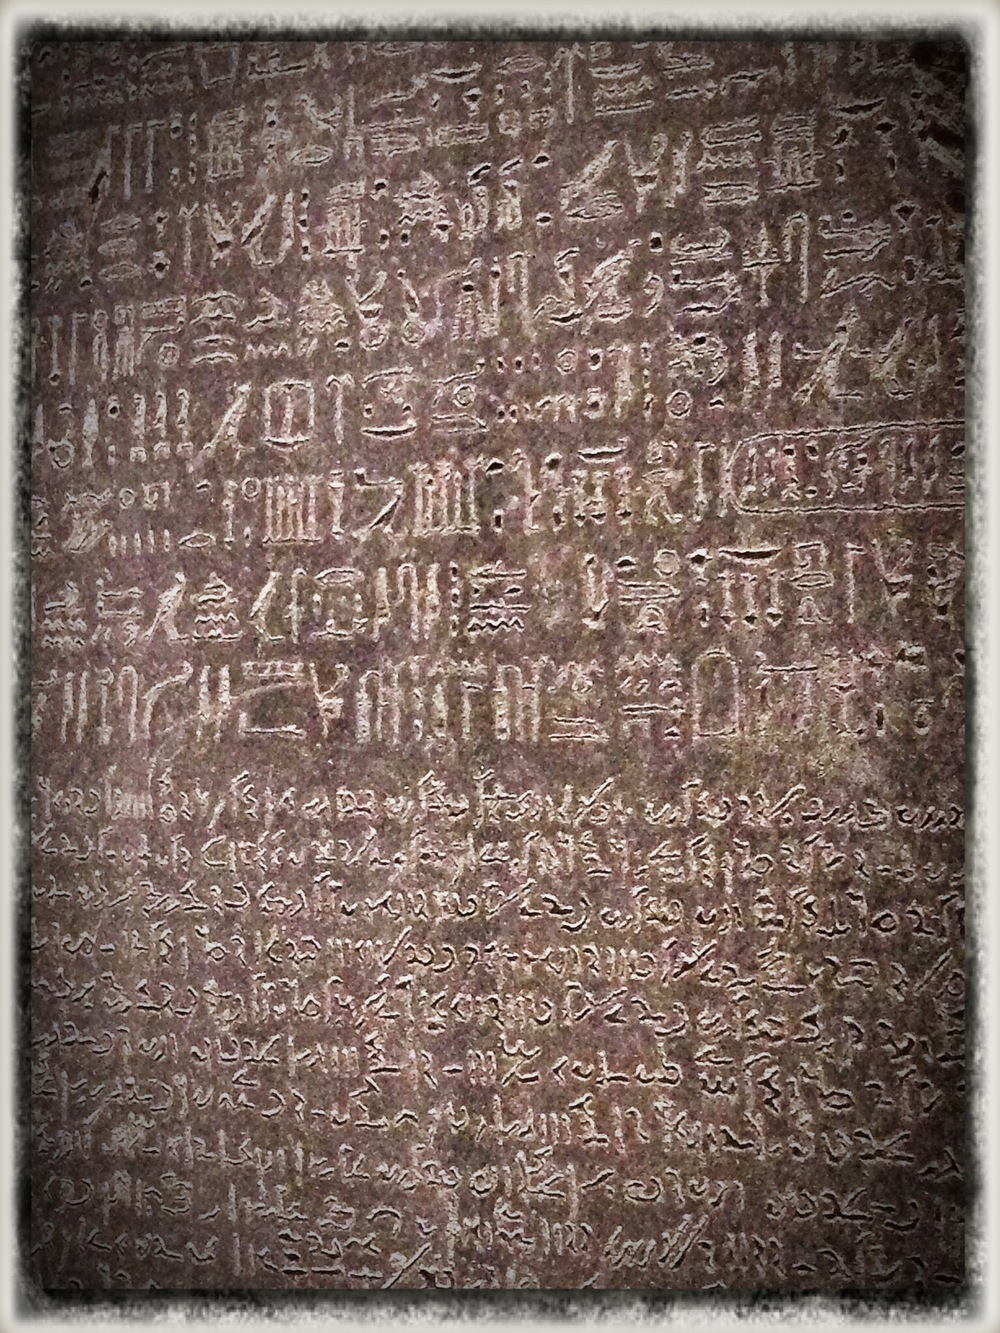 The Rosetta Stone, up close and personal